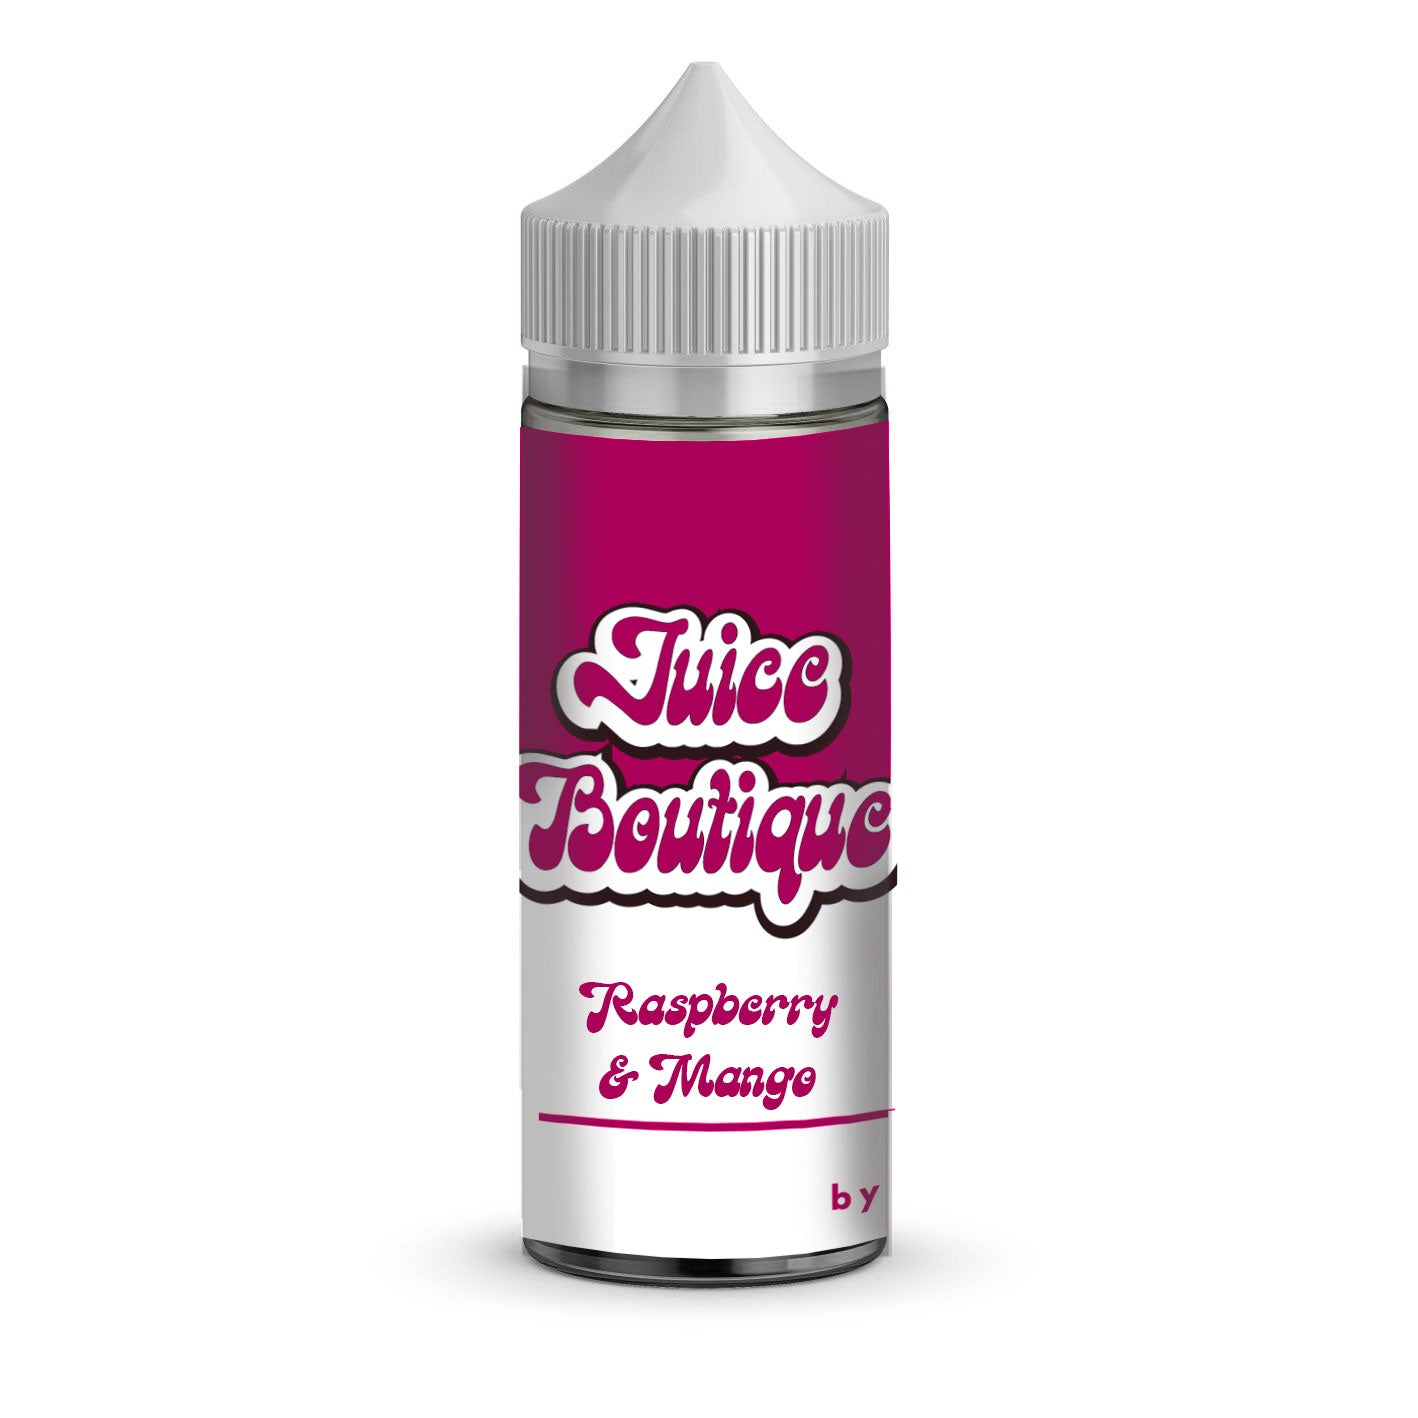 Juice Boutique Raspberry & Mango By Hodges Short Fill E-Liquid (100ml)120ml